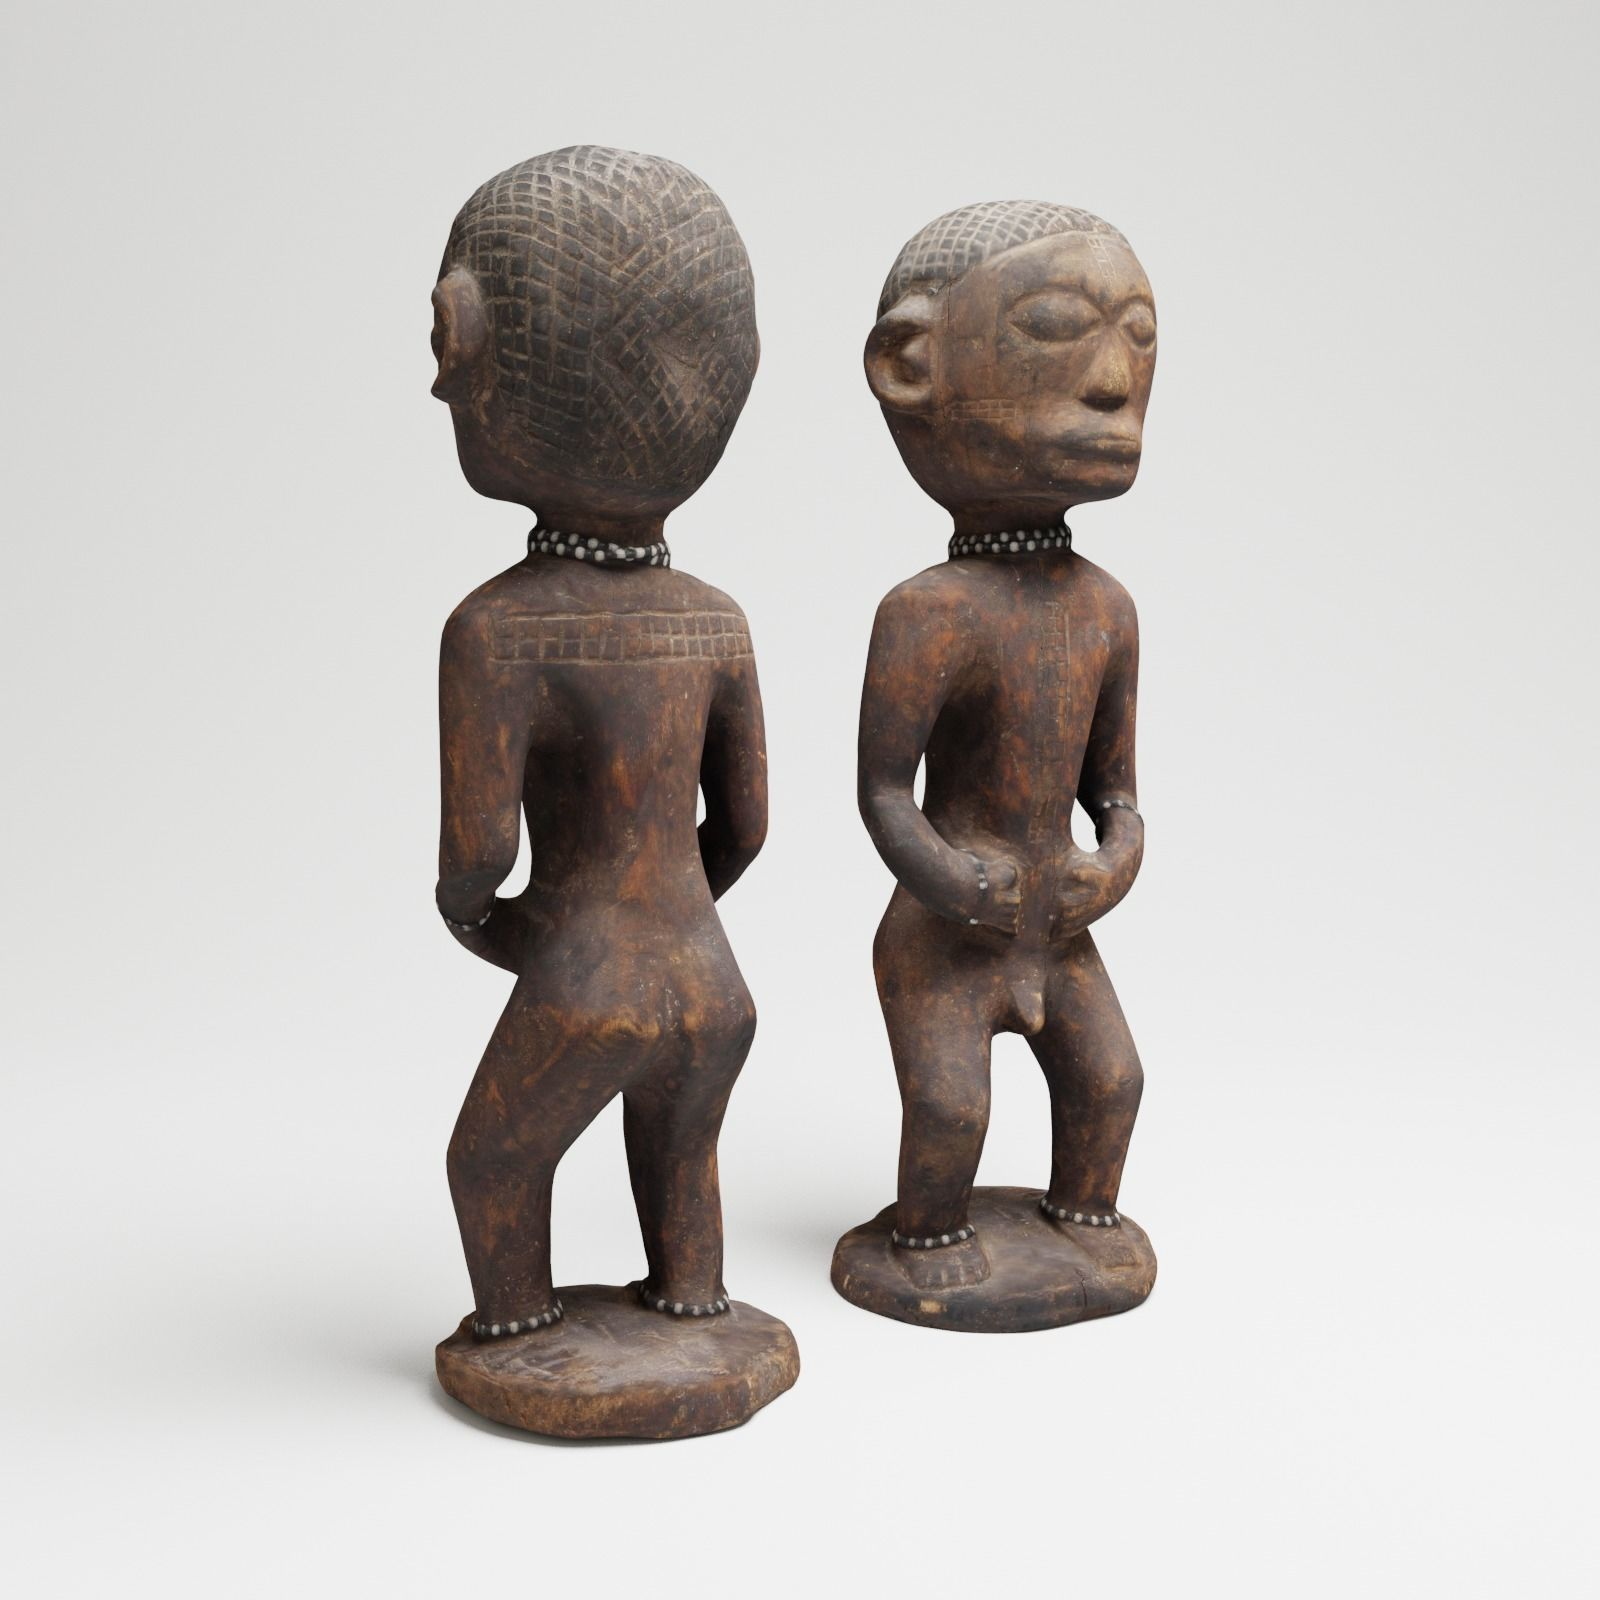 Ancient African Male Wood Sculpture from Uganda 3d scan